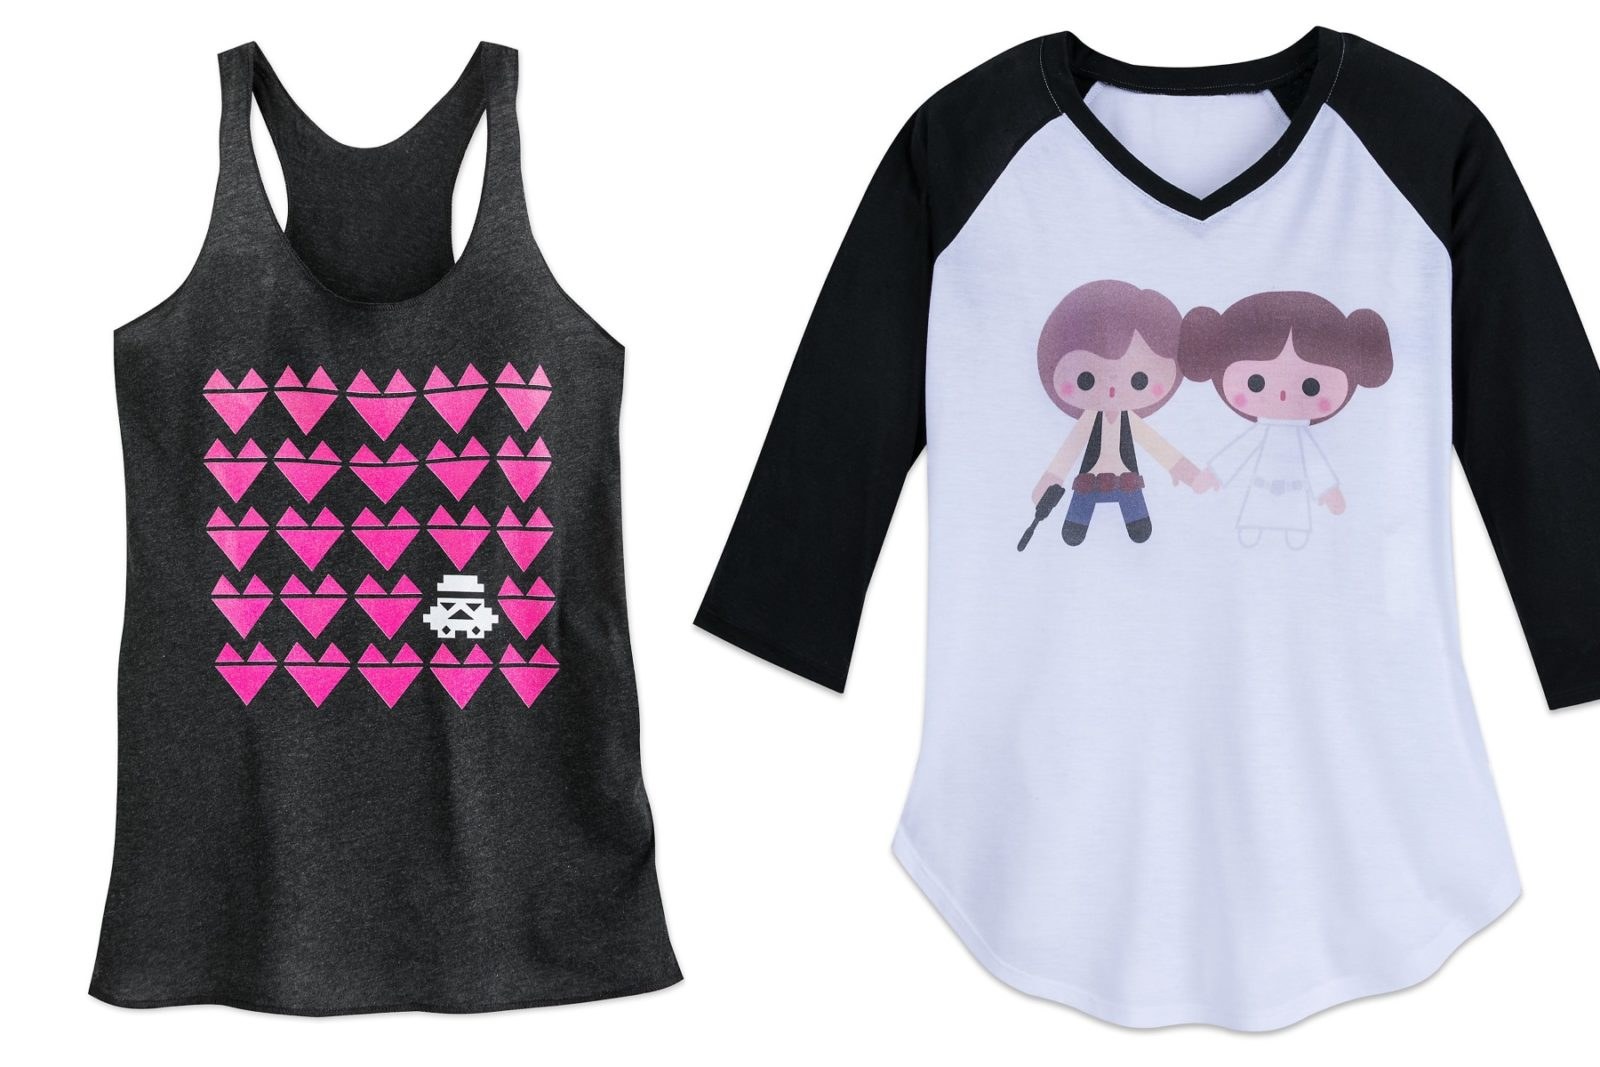 Women's Valentine's Day Tops at Shop Disney